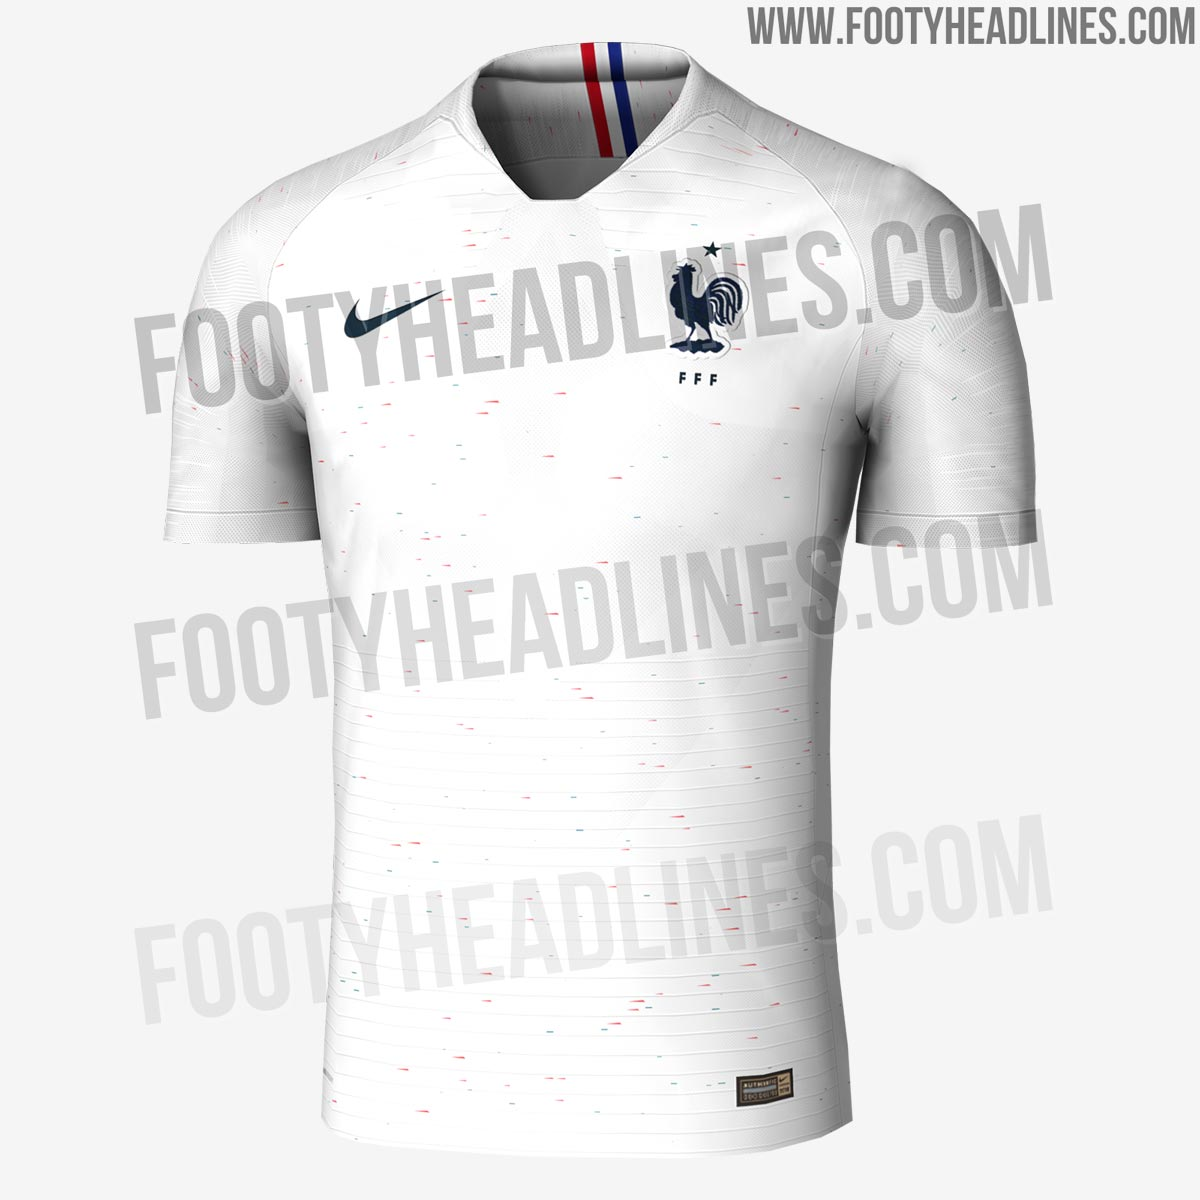 2fa5c4d7e78 FRANCE 2018 WORLD CUP AWAY KIT. This image shows the France 2018 away  uniform.